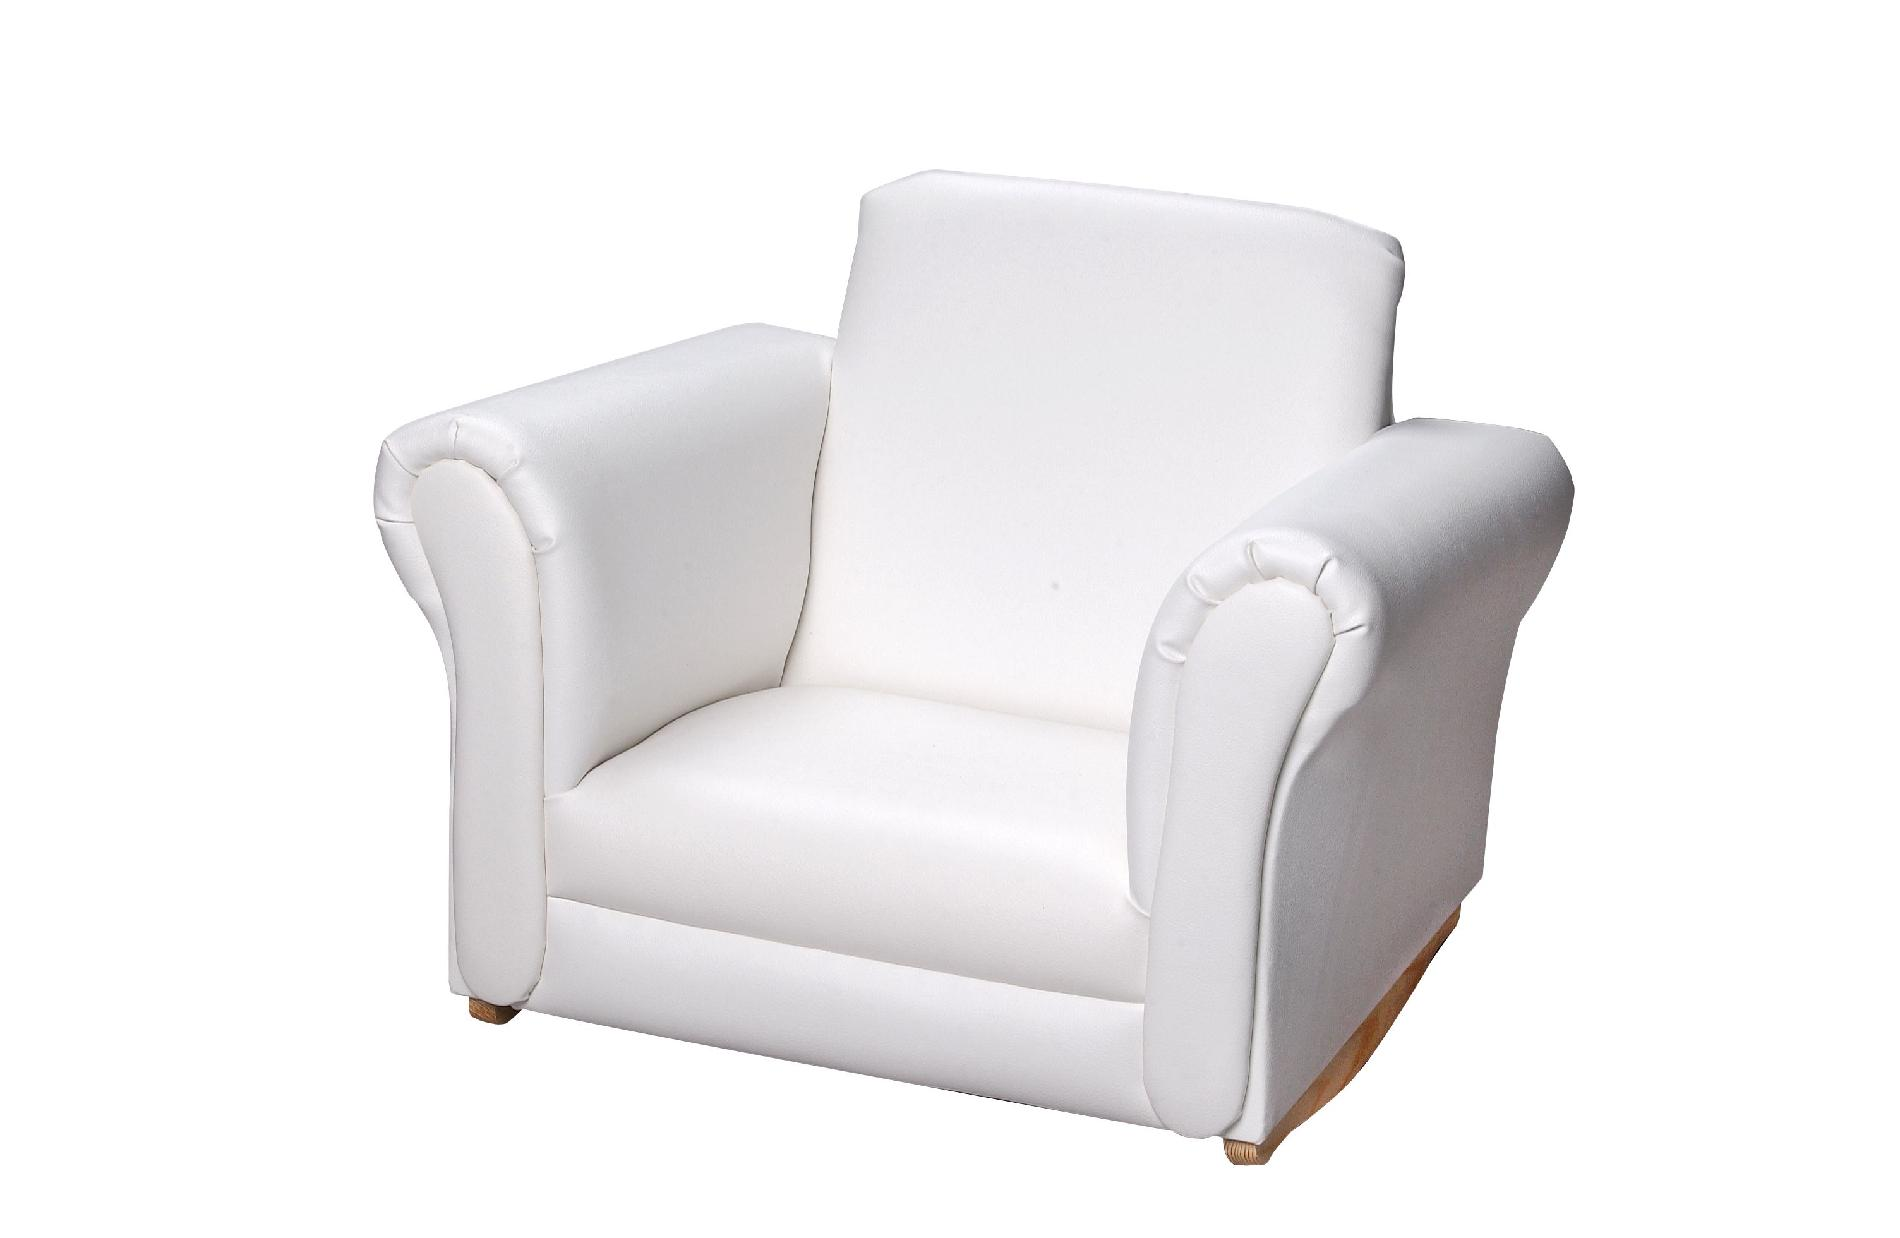 White Upholstered Chair Giftmark 6725w Upholstered Rocking Chair White Sears